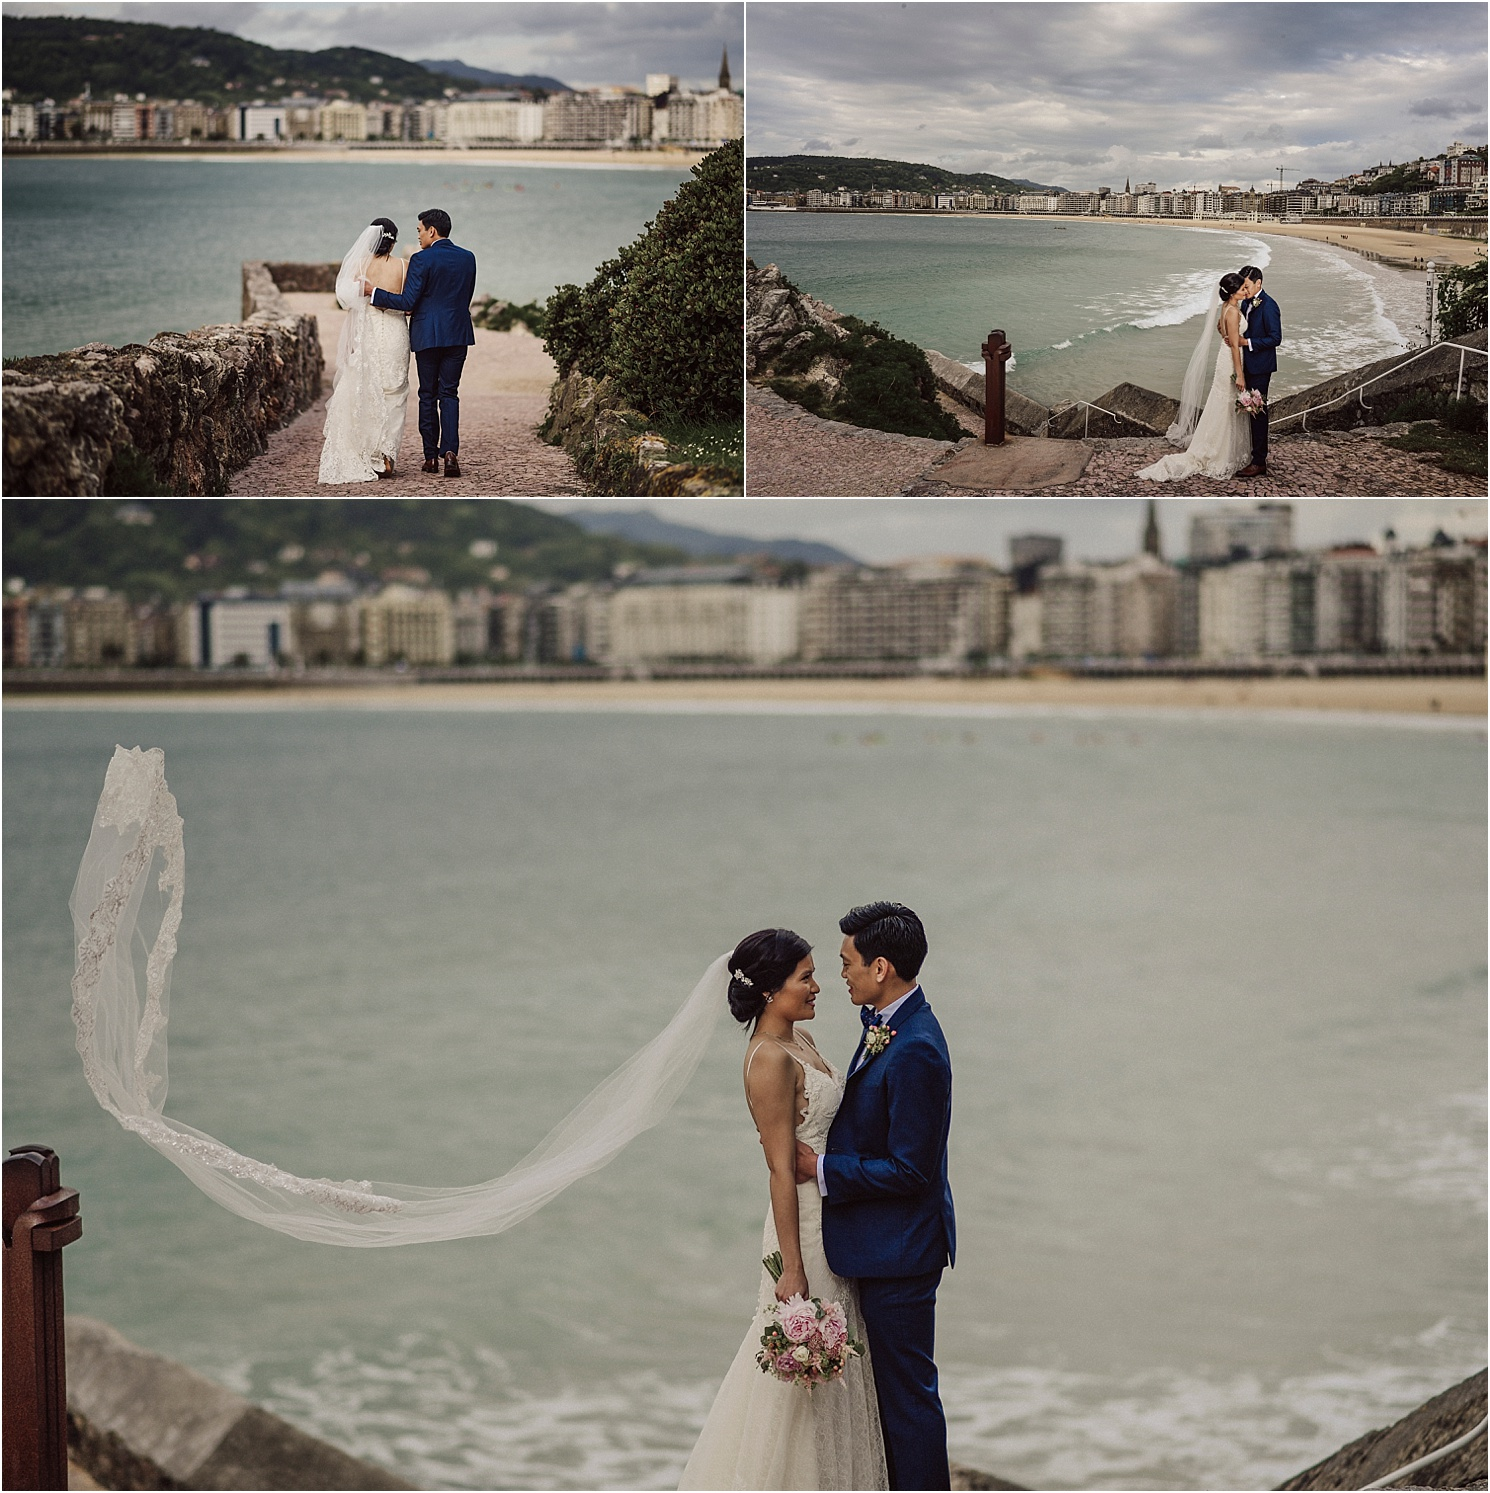 Destination wedding photographer San Sebastian - Destiantion wedding Donostia San Sebastián - Best photographer Basque country_-53.jpg